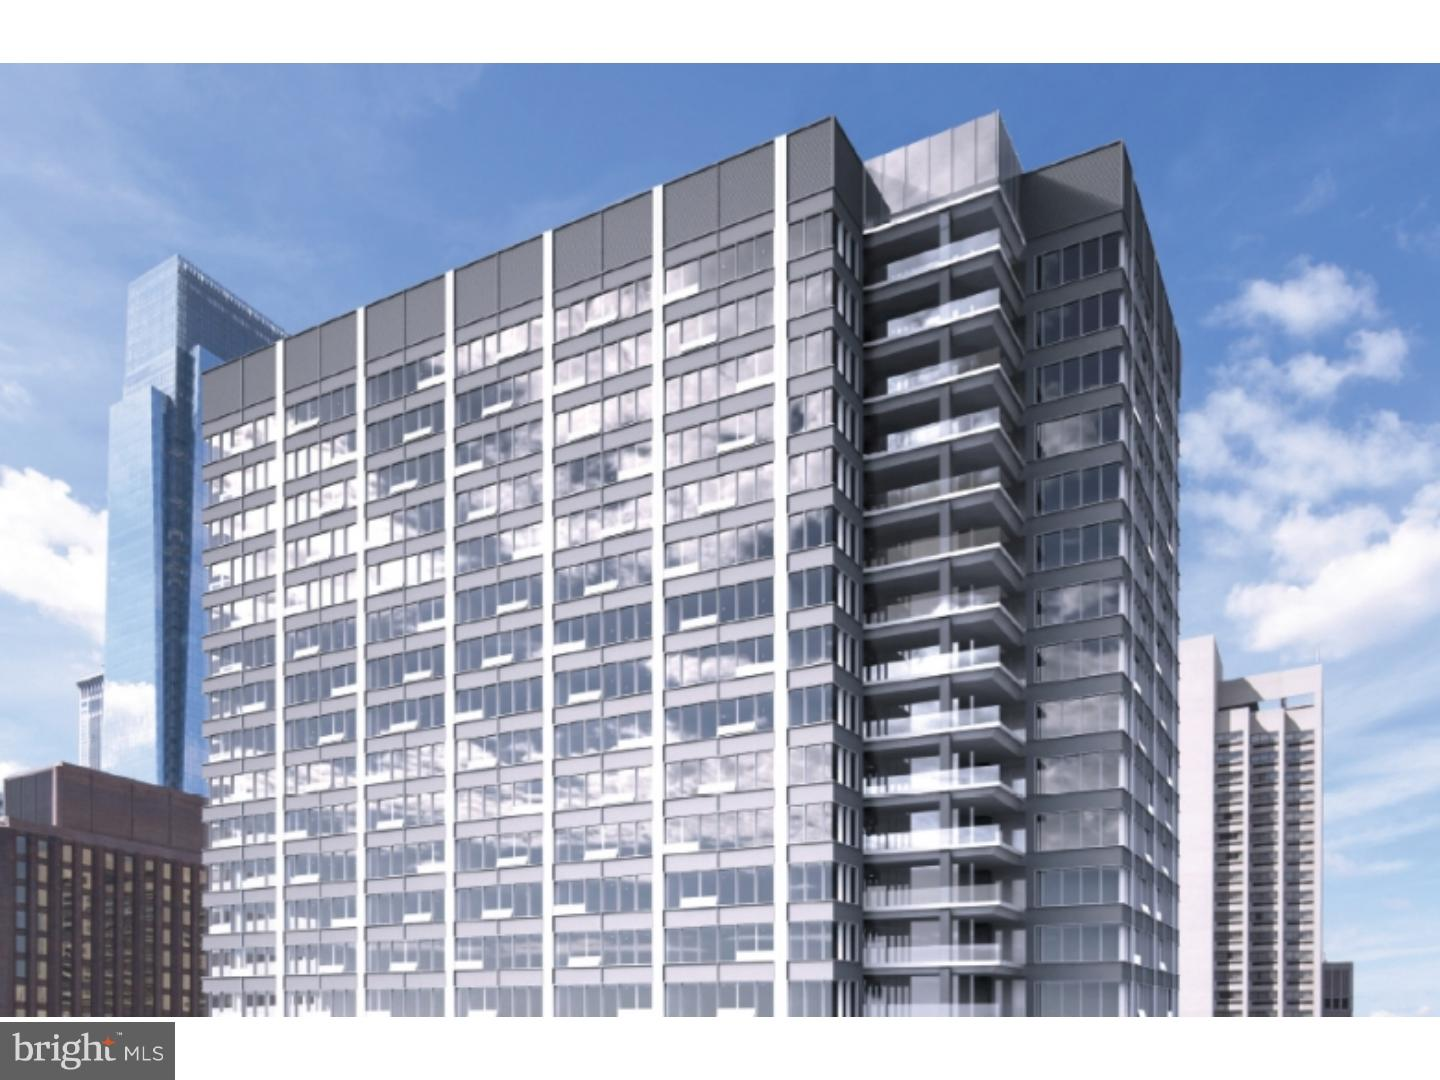 BEAUTIFUL One BEDROOM, with OUTRAGEOUS VIEWS of the BEN FRANKLIN BRIDGE. Watch the SUN Rise from this brand new ONE BEDROOM LUXURY residence, at FRANKLIN TOWER. All open living and DINING area. Kitchen with breakfast bar, stainless steel appliances, and custom cabinetry. Gracious bedroom, and fantastic bath. This must see residence is EXTRAORDINARY. This new APARTMENT building community boasts, GARAGE PARKING, and one of the following on EVERY FLOOR: gyms, community rooms, business centers, screening rooms, and SPIN ROOMS. The ROOF DECK is the LARGEST in PHILADELPHIA and has 360 degree AMAZING VIEWS!!!!!!!!! This is a Must SEE LIFE STYLE property, and just minutes from fantastic dining, entertainment, Hahnemann hospital, I95, I676, Kelly Drive, The Barnes, and Whole foods Market. Incentives for A limited time 1 month free on a 13 month lease, waived app fee, and waived $350 amenity fee. Parking available for additional fee. GOT STUFF? Your own designated storage space for 1 year. Limited time only!